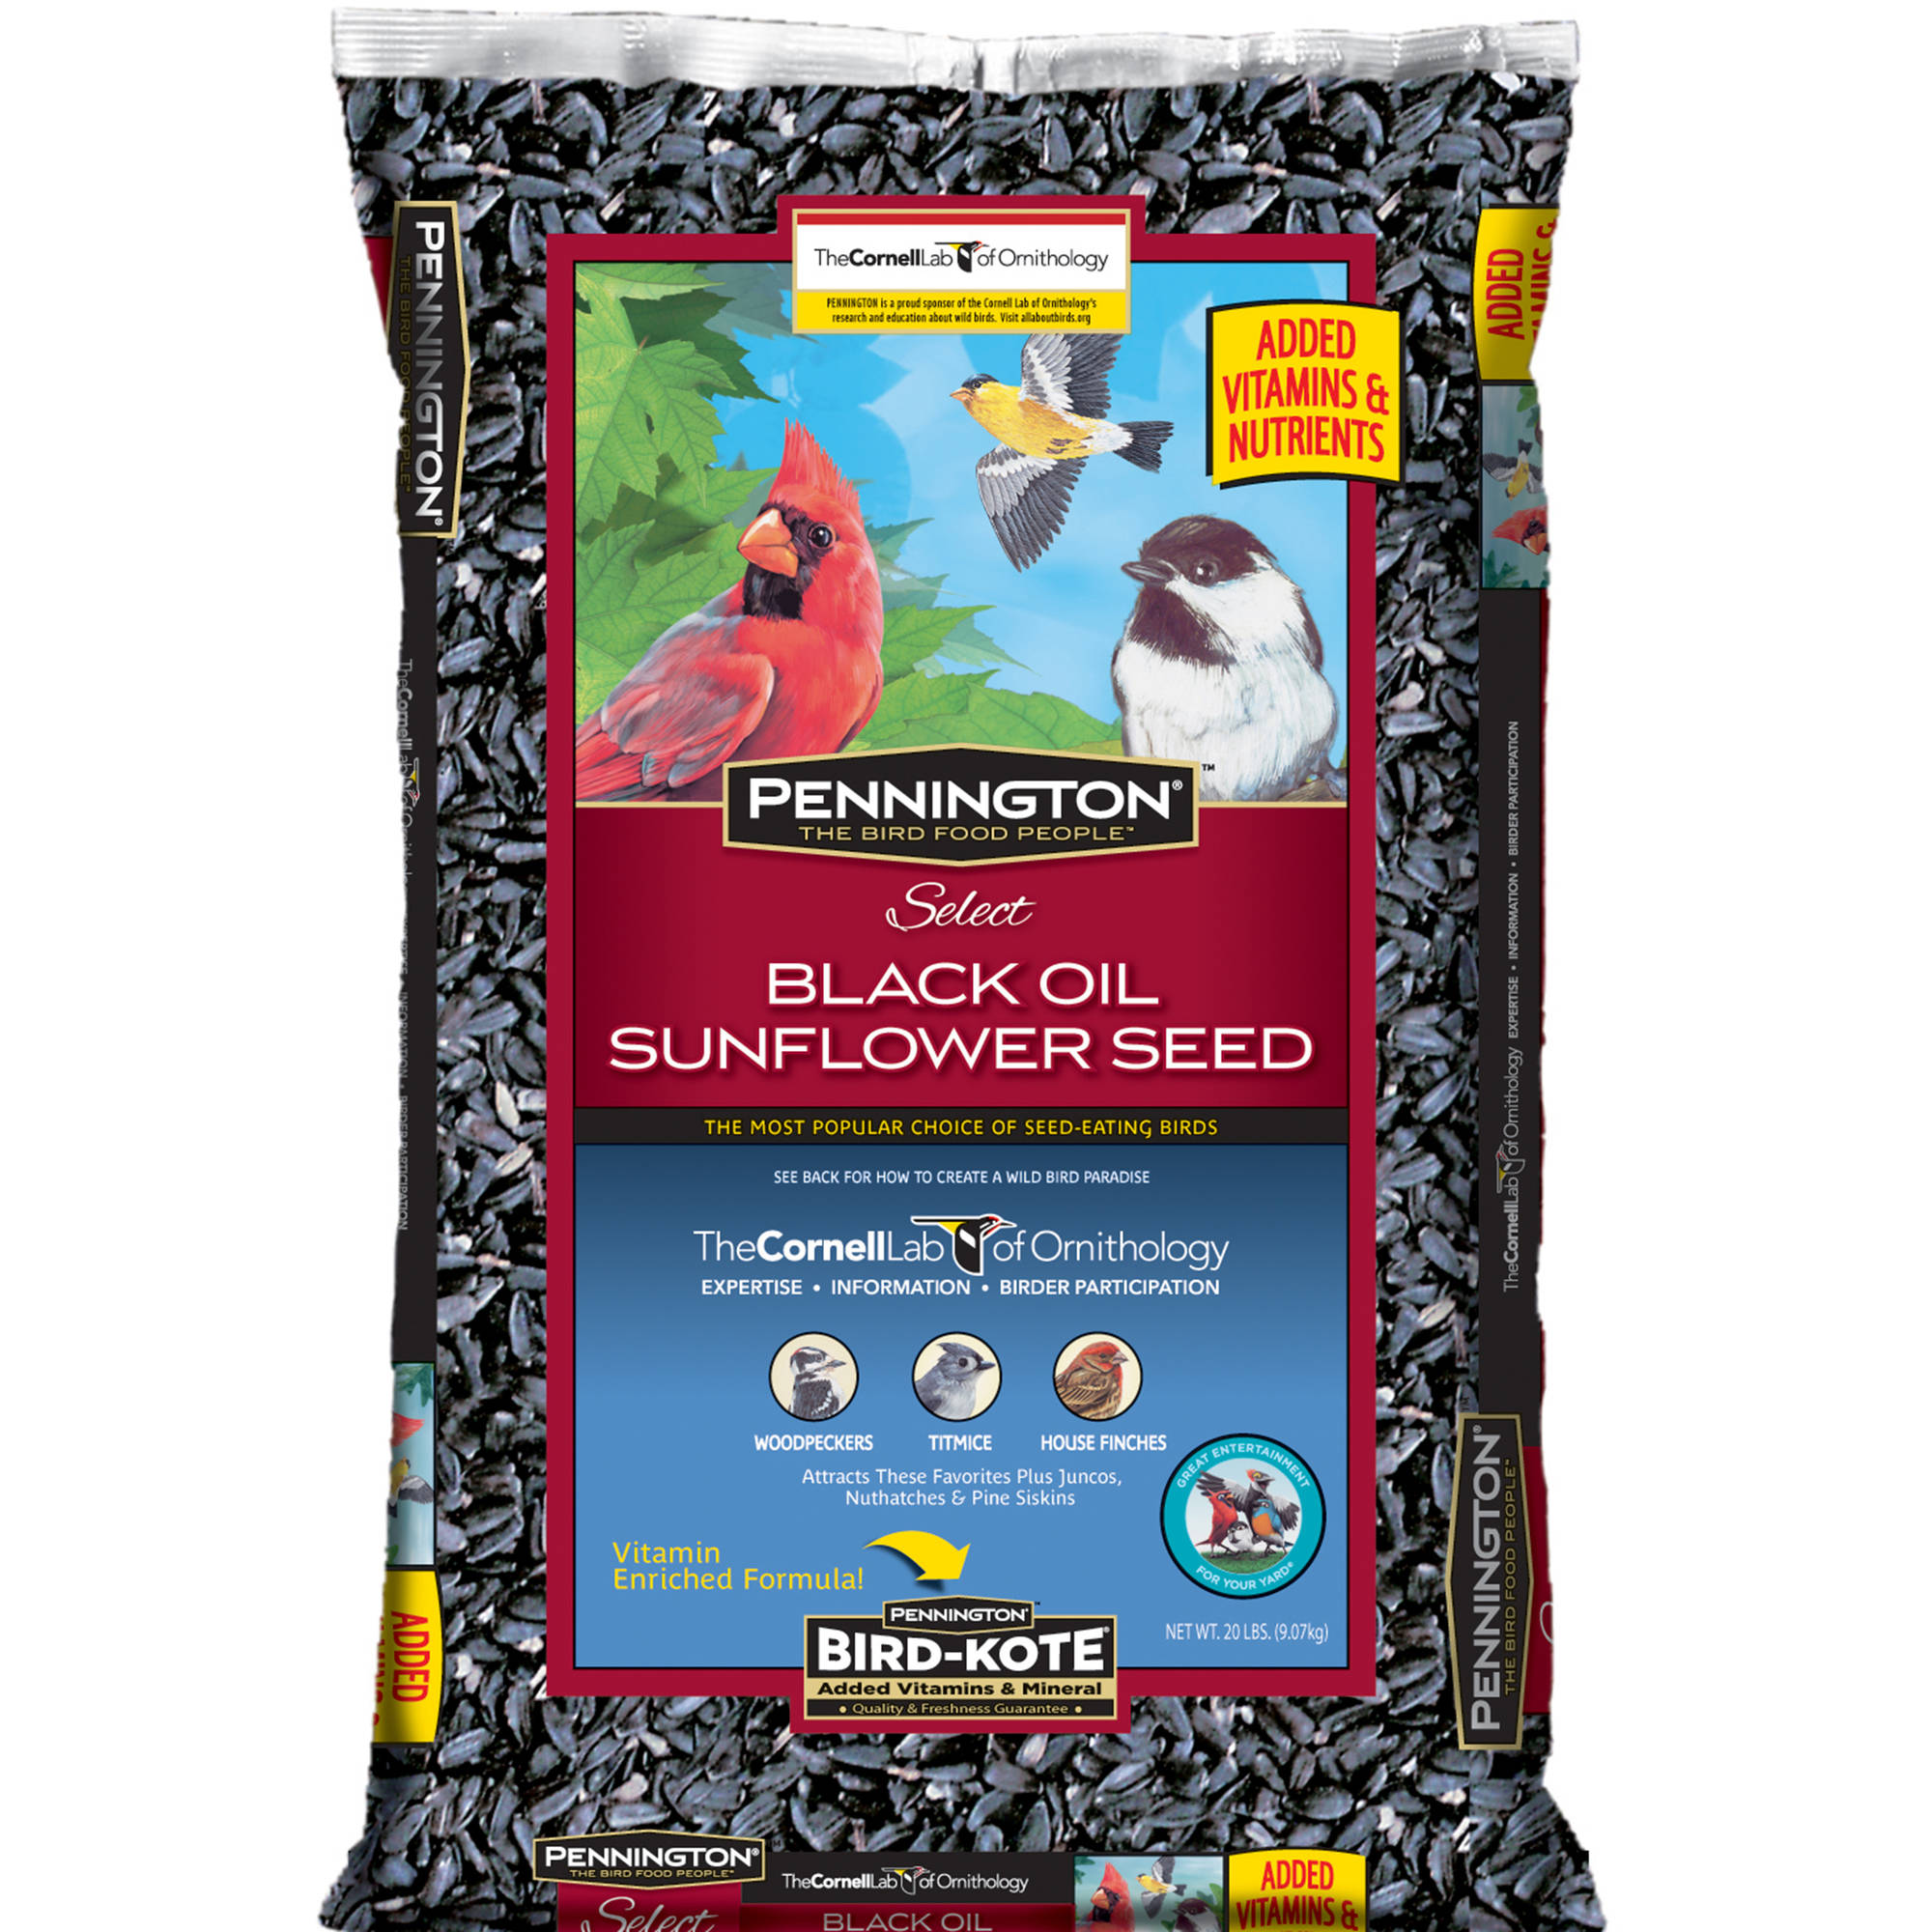 Pennington Select Black Oil Sunflower Seed Wild Bird Feed, 20 lbs